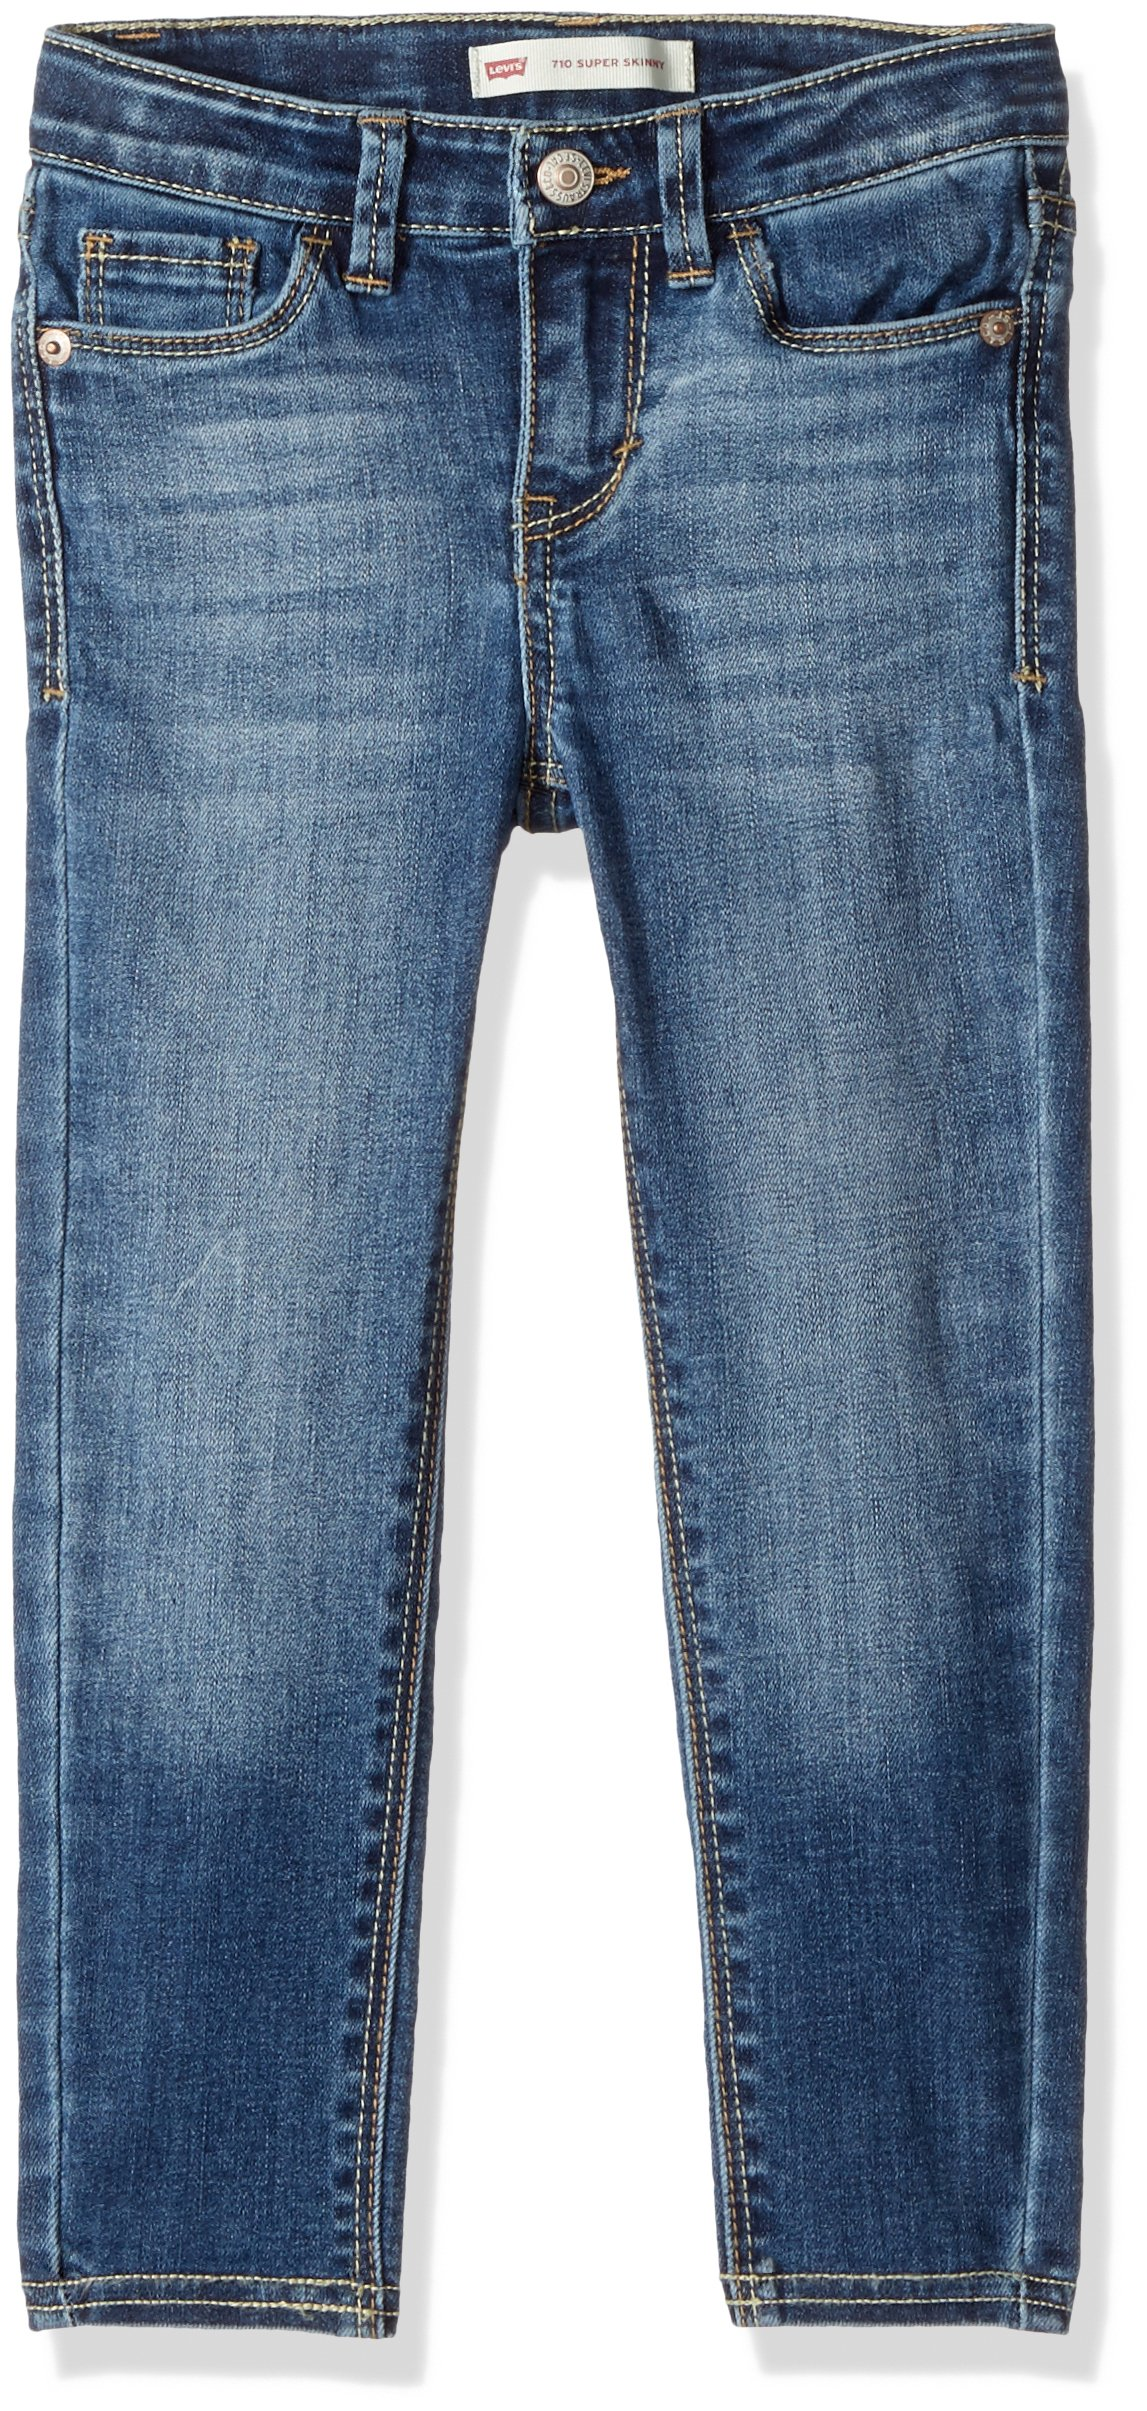 Levi's Toddler Girls' 710 Super Skinny Fit Classic